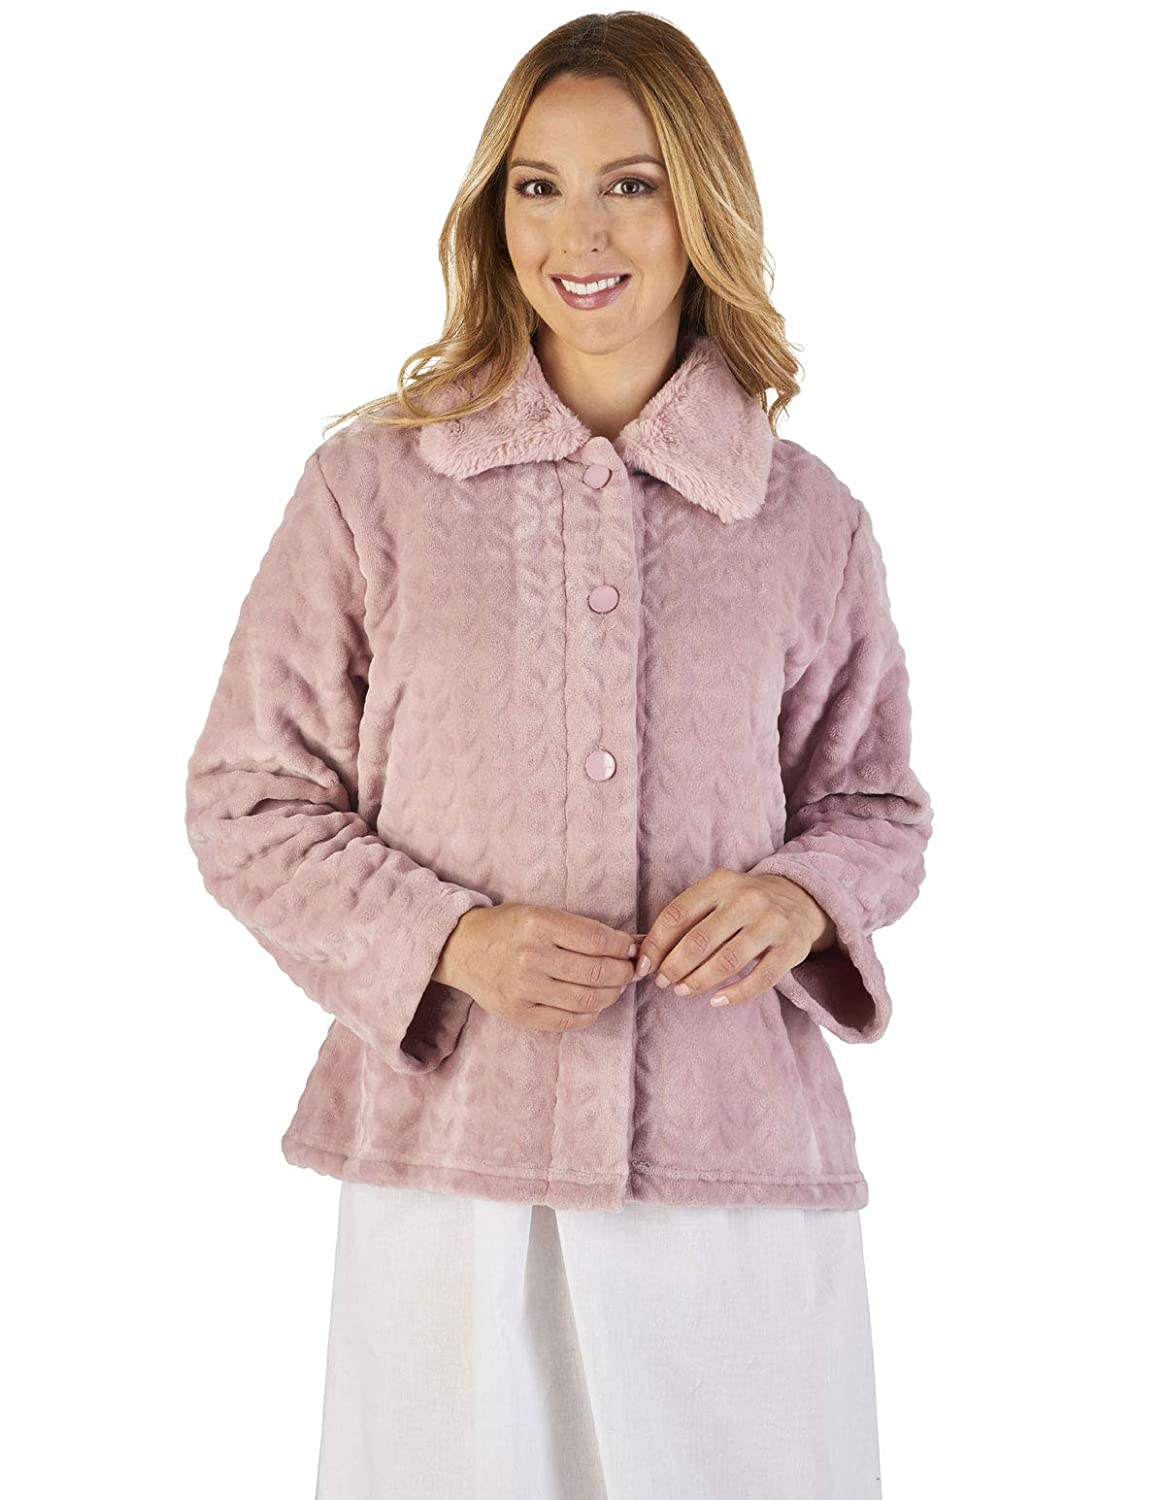 TALLA XX-Large. Slenderella BJ2340 Women's Faux Collar Bed Jacket